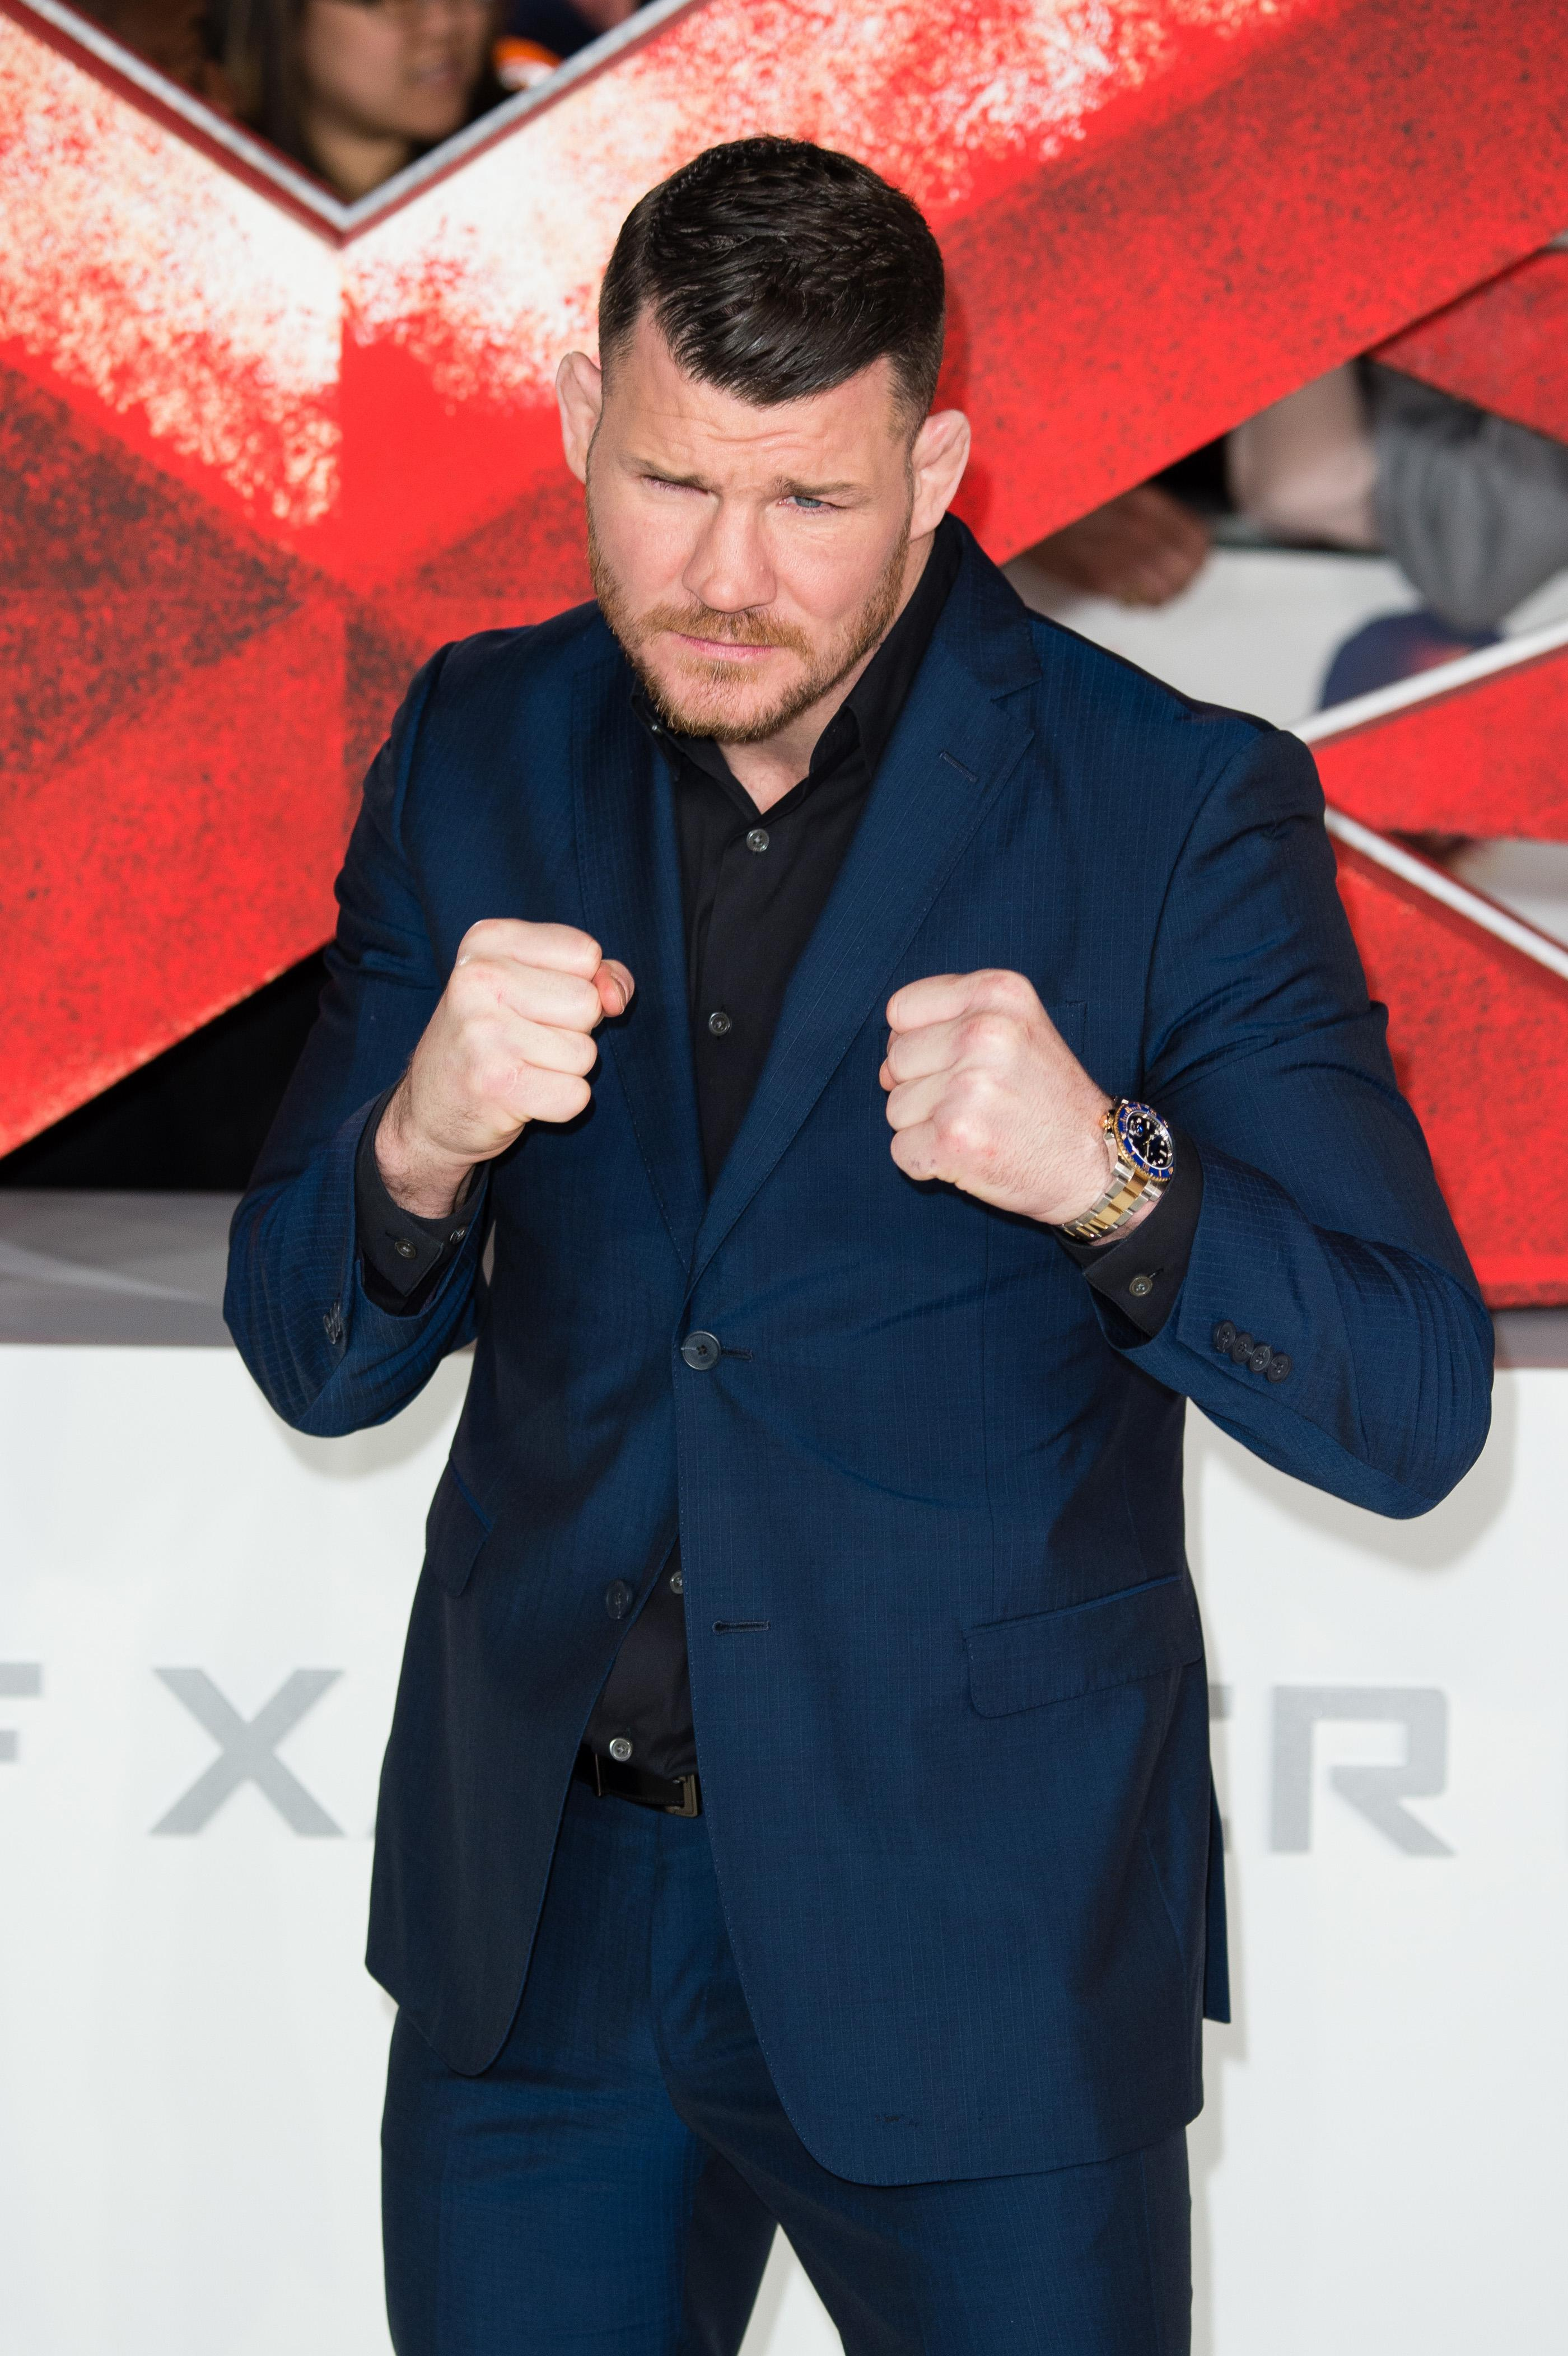 Michael Bisping has moved into films since retiring